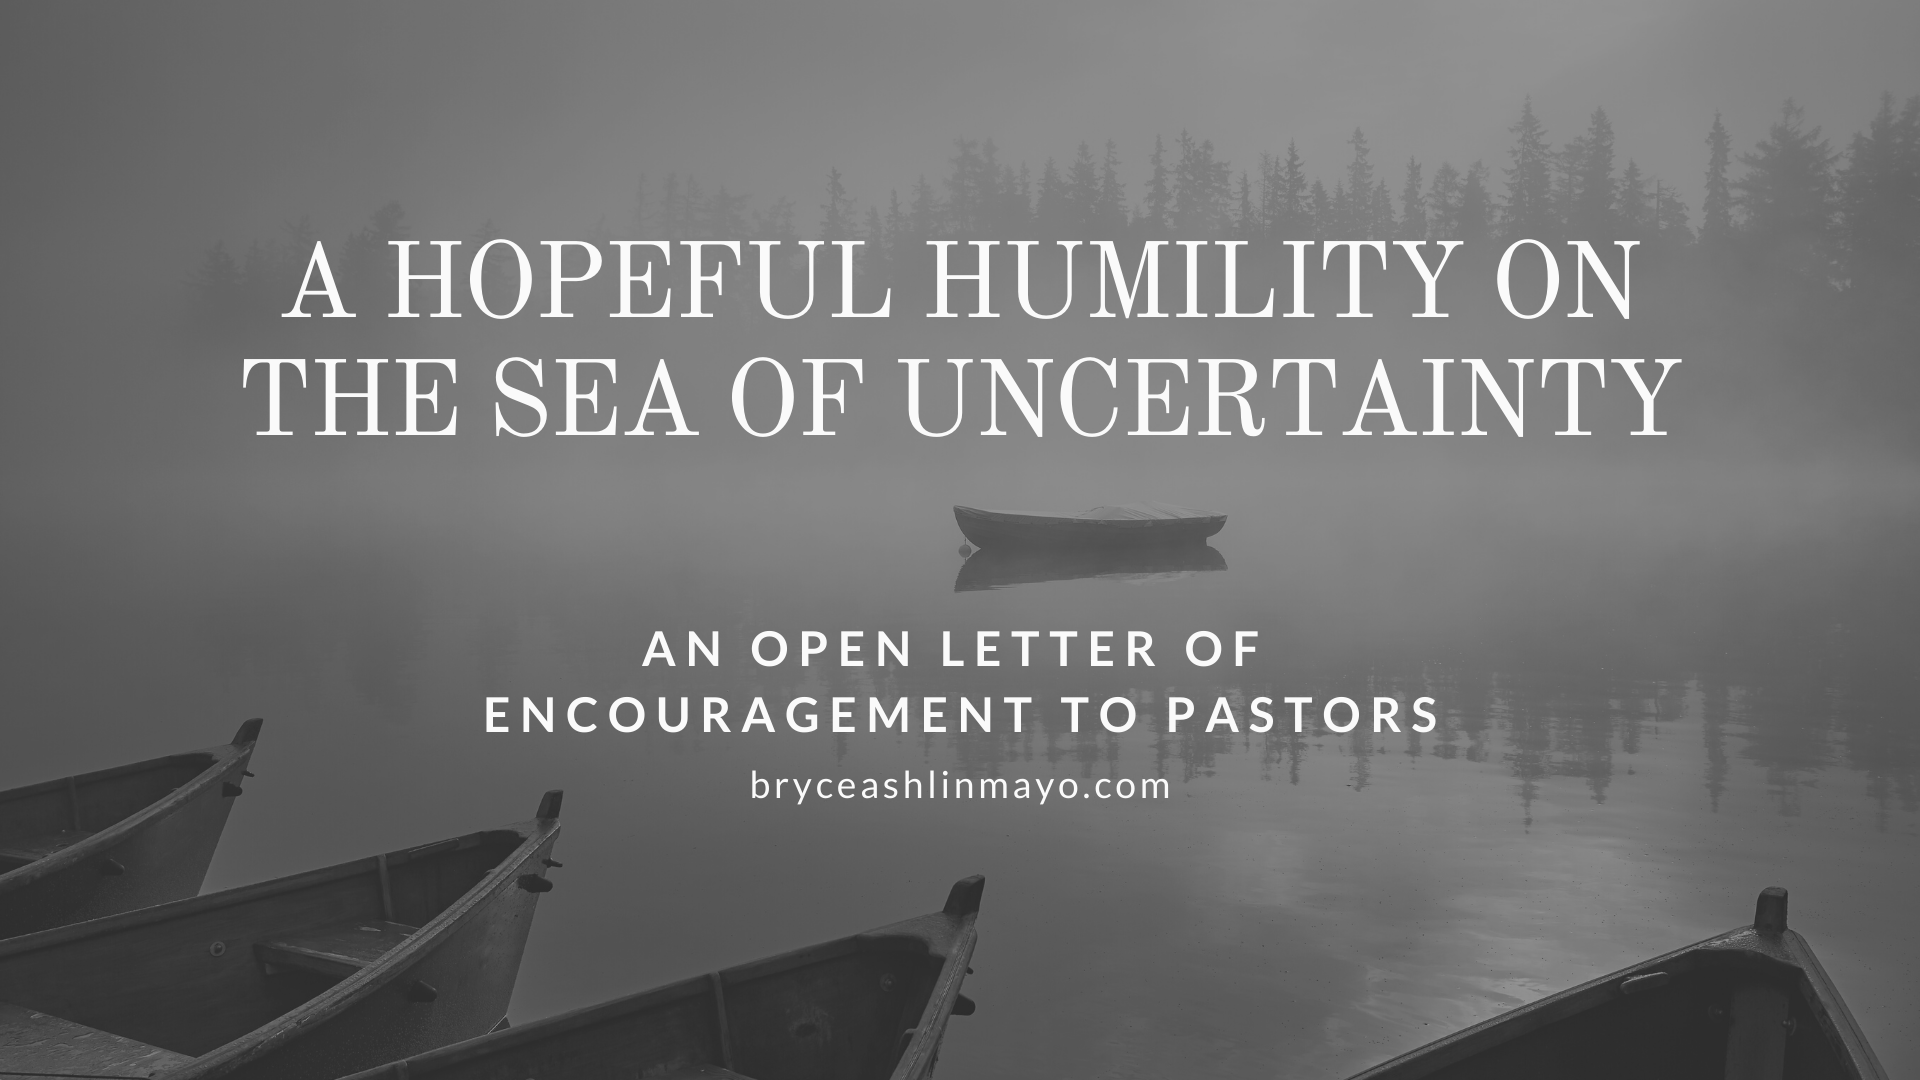 A Hopeful Humility on the Sea of Uncertainty